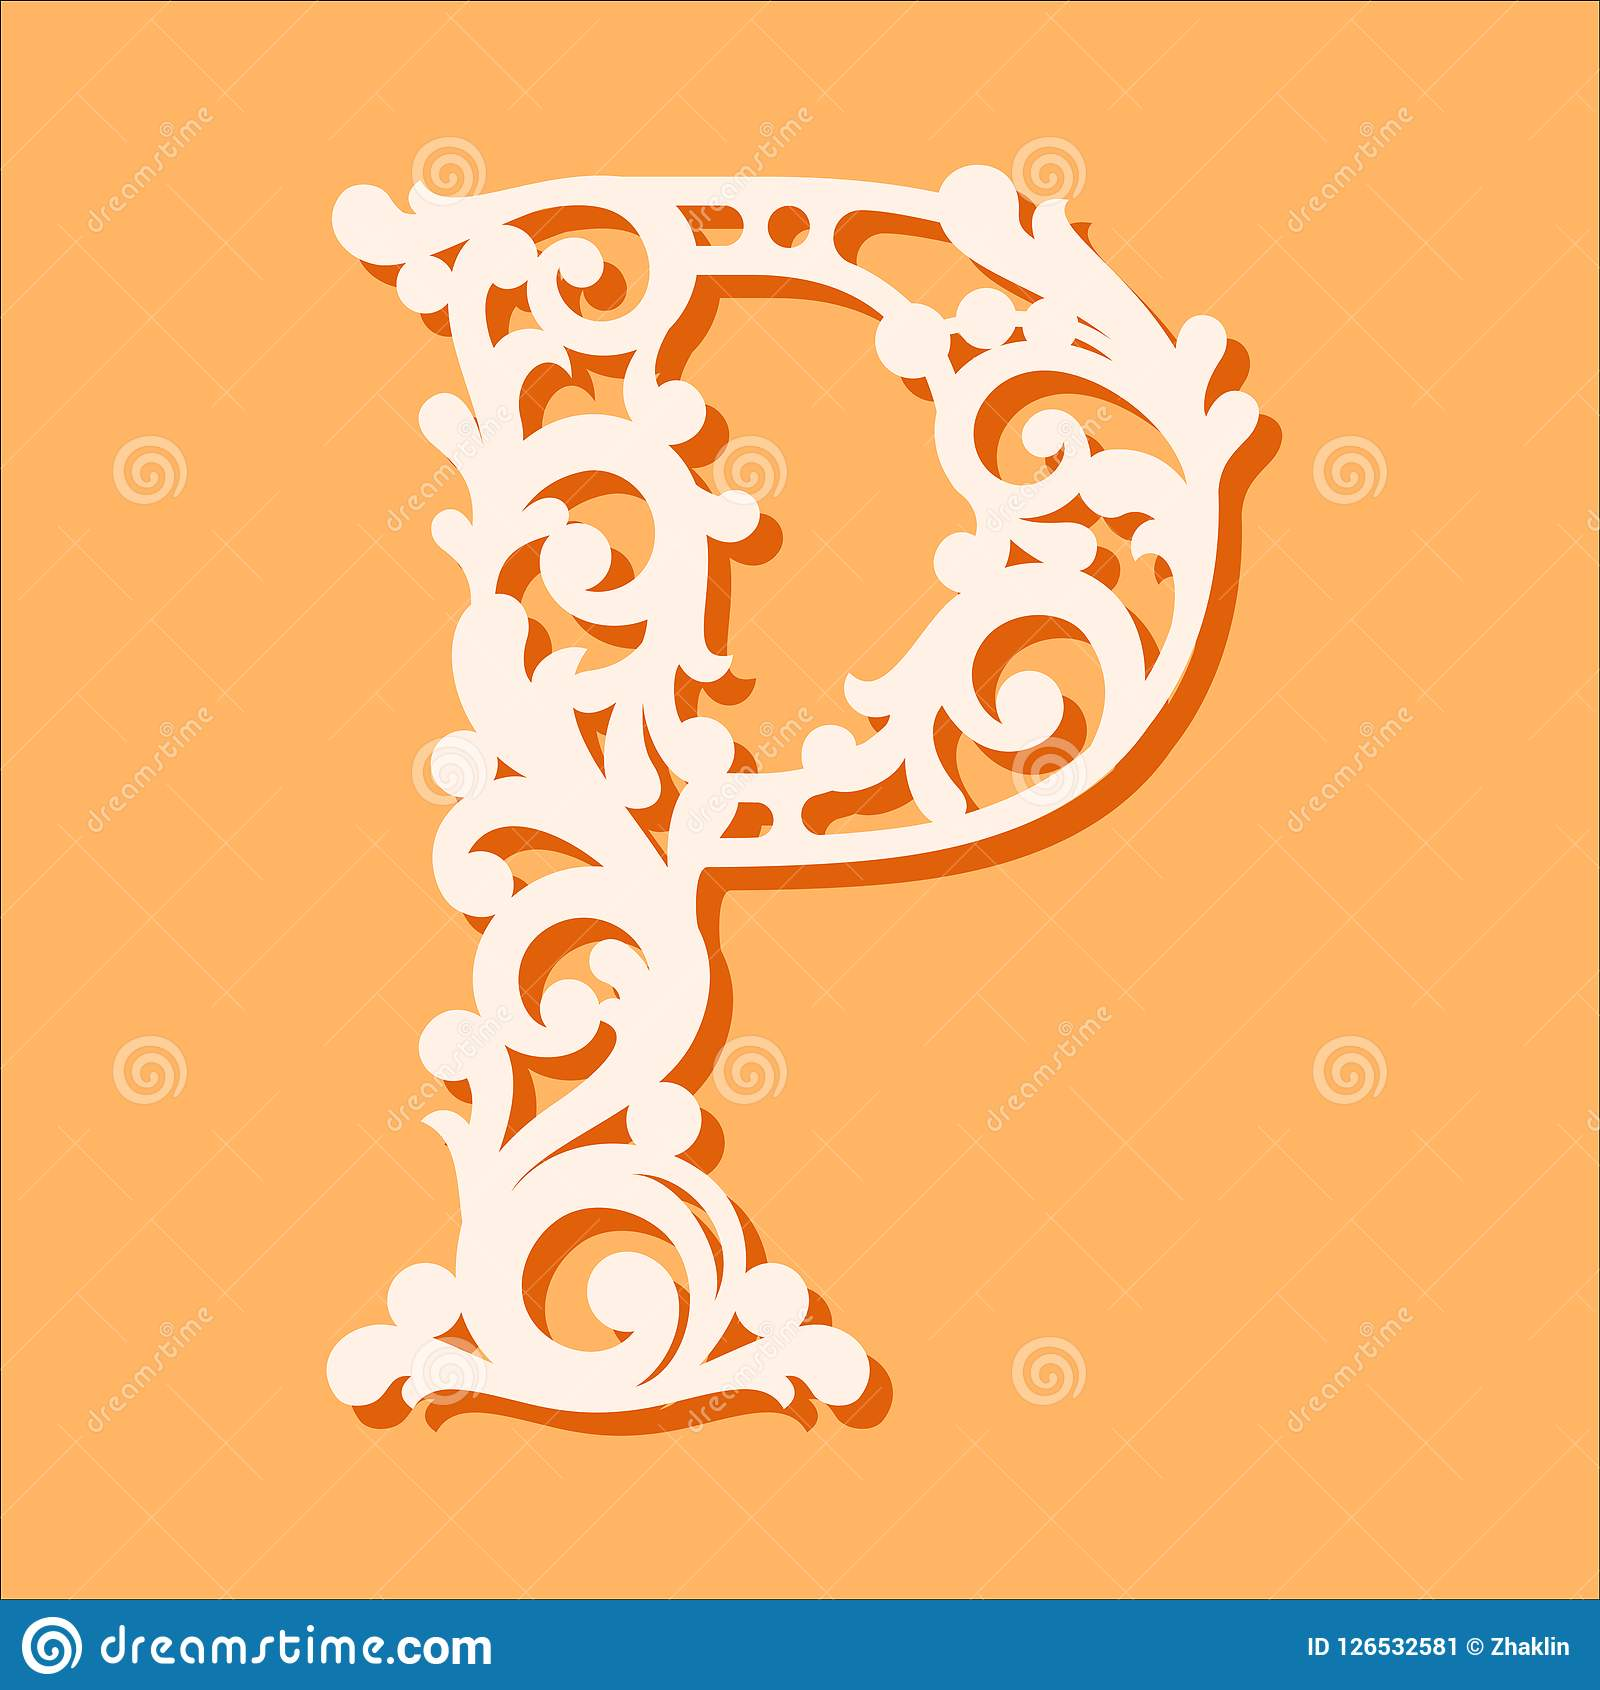 graphic about Printable Cutout Letters named Laser Reduce Template. First Monogram Letters. Extravagant Floral